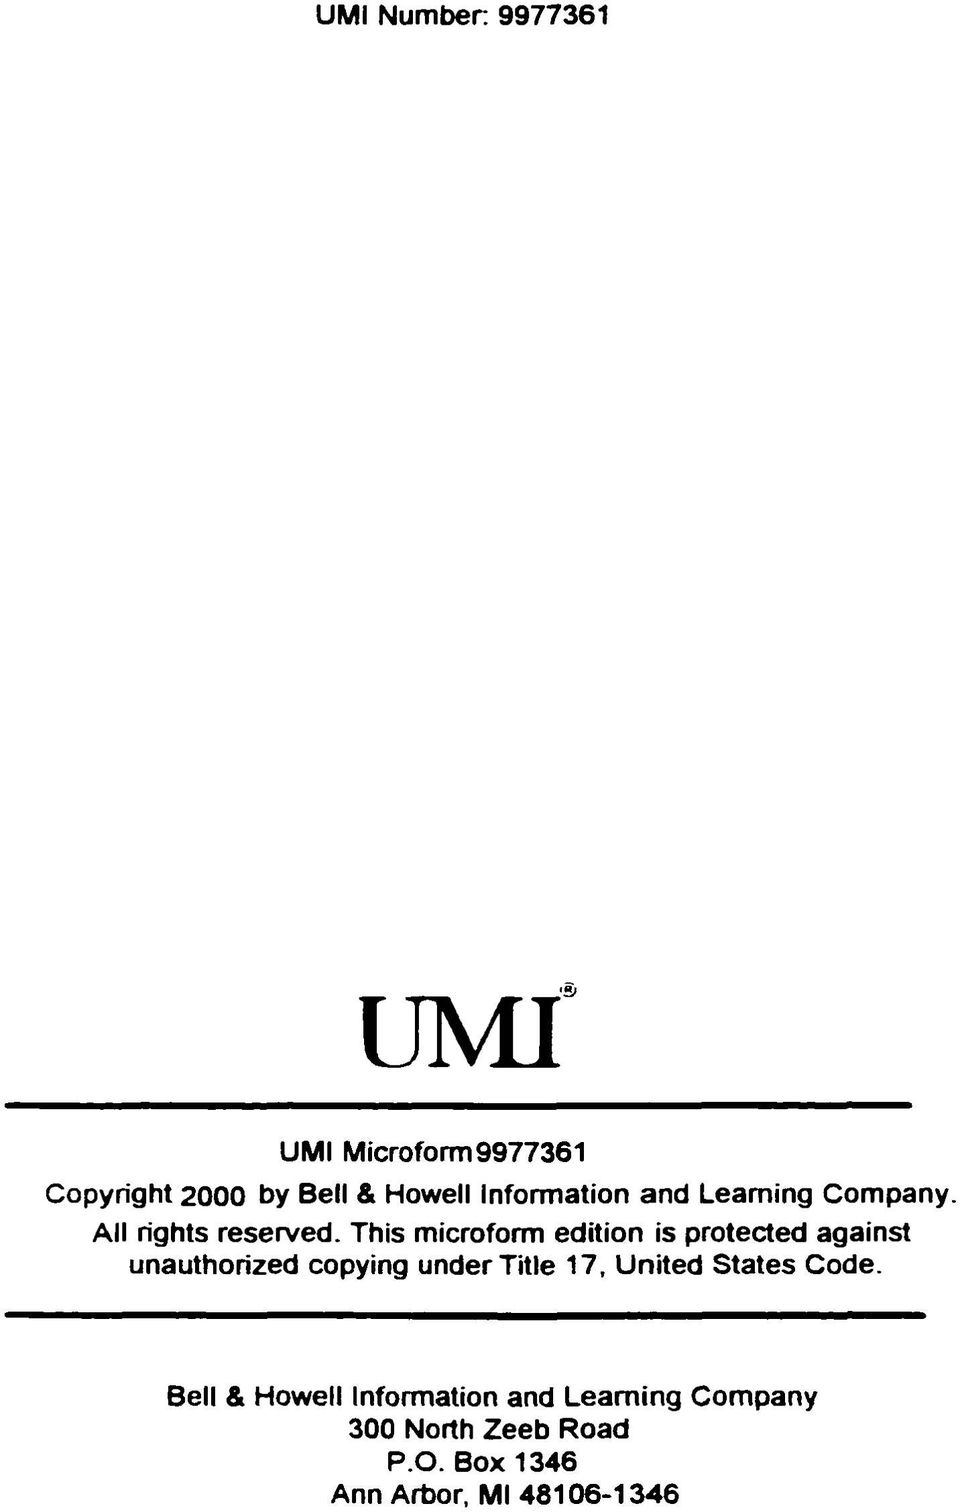 dissertation on knowledge management pdf The impact of information technology on supply chain performance: a knowledge management perspective by yuan niu a dissertation submitted to the faculty of.